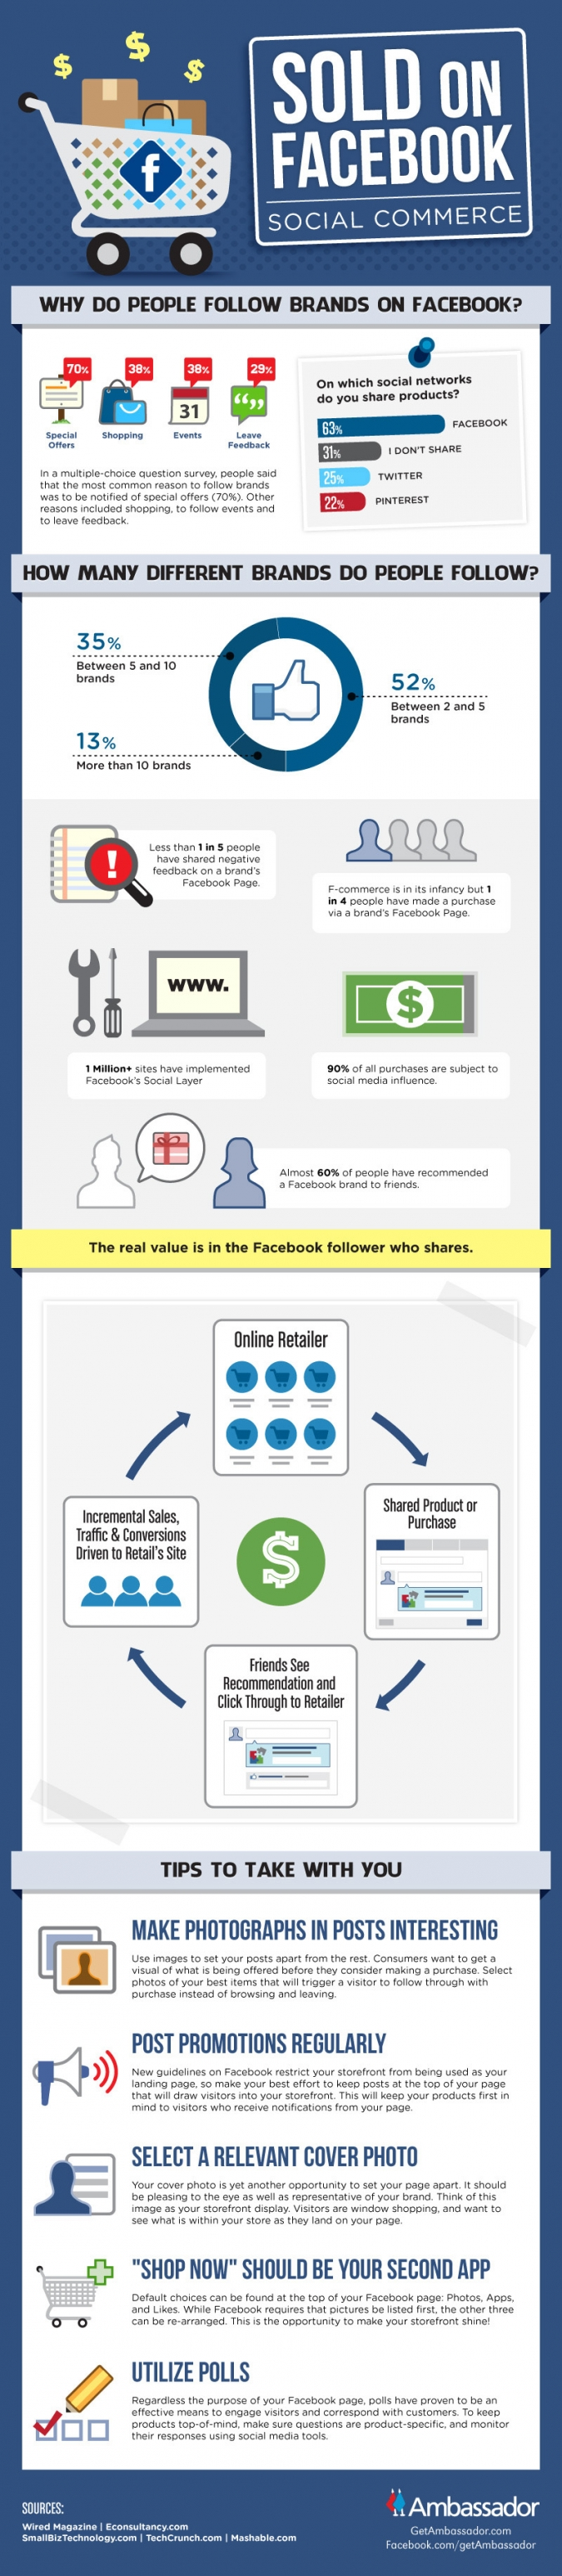 agentur-social-commerce-online-shop-verkauf-sales-facebook-social-shopping-deutschland-strategie-roi-facebook-open-graph